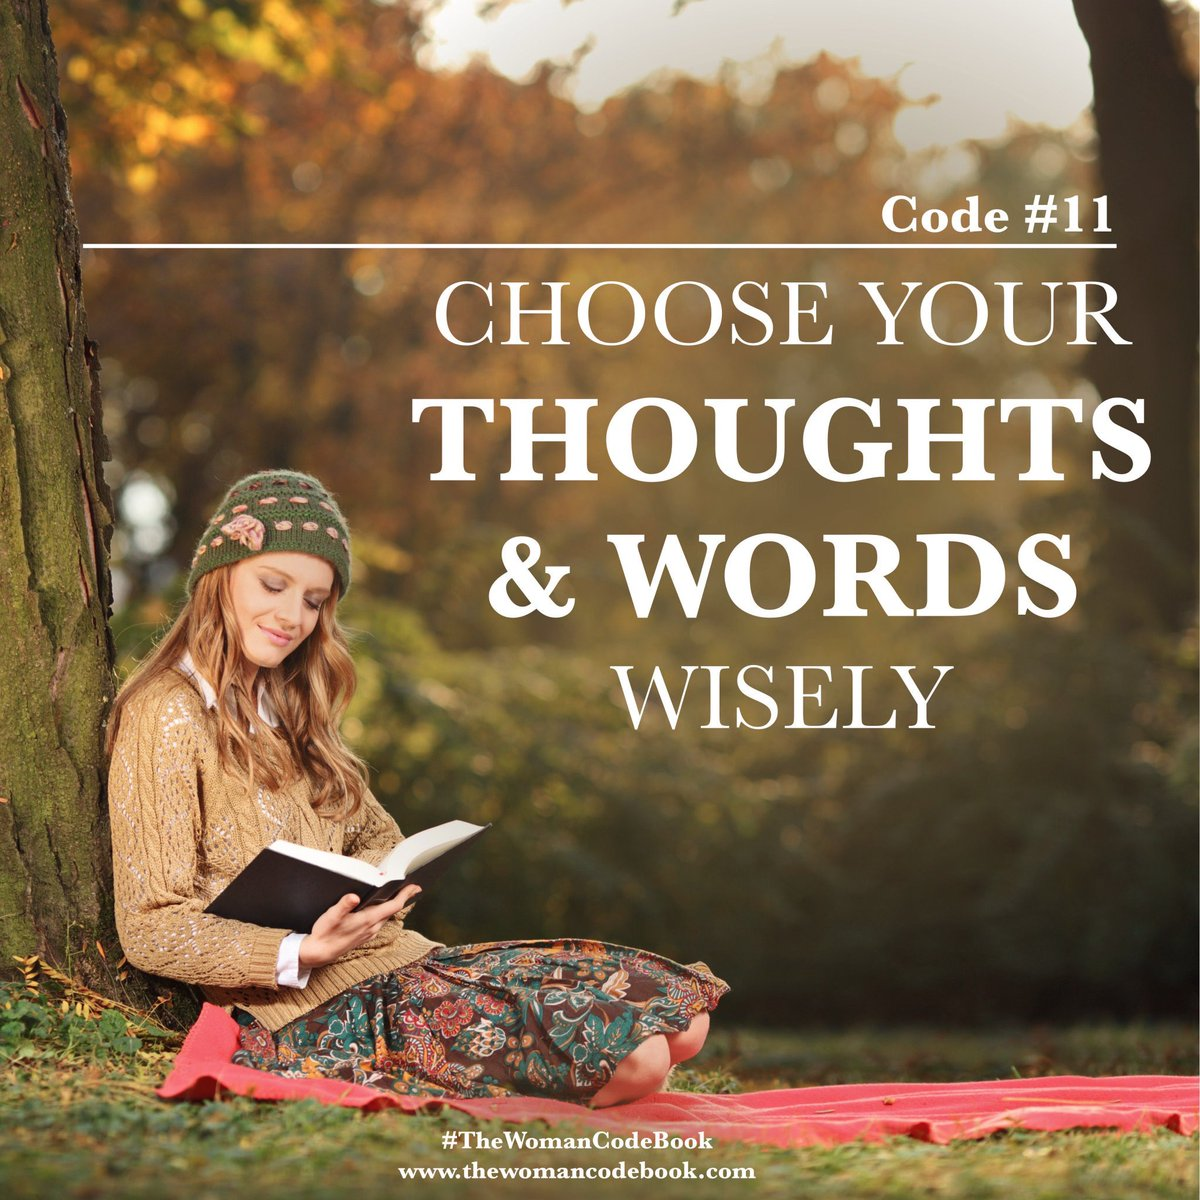 """""""Watch your thoughts for they become words. Watch your words for they become actions. Watch your actions for they become habits. Watch your habits for they become your character. And watch your character for it becomes your destiny. What we think, we become.#thewomancode <br>http://pic.twitter.com/bv9lHDZFQj"""